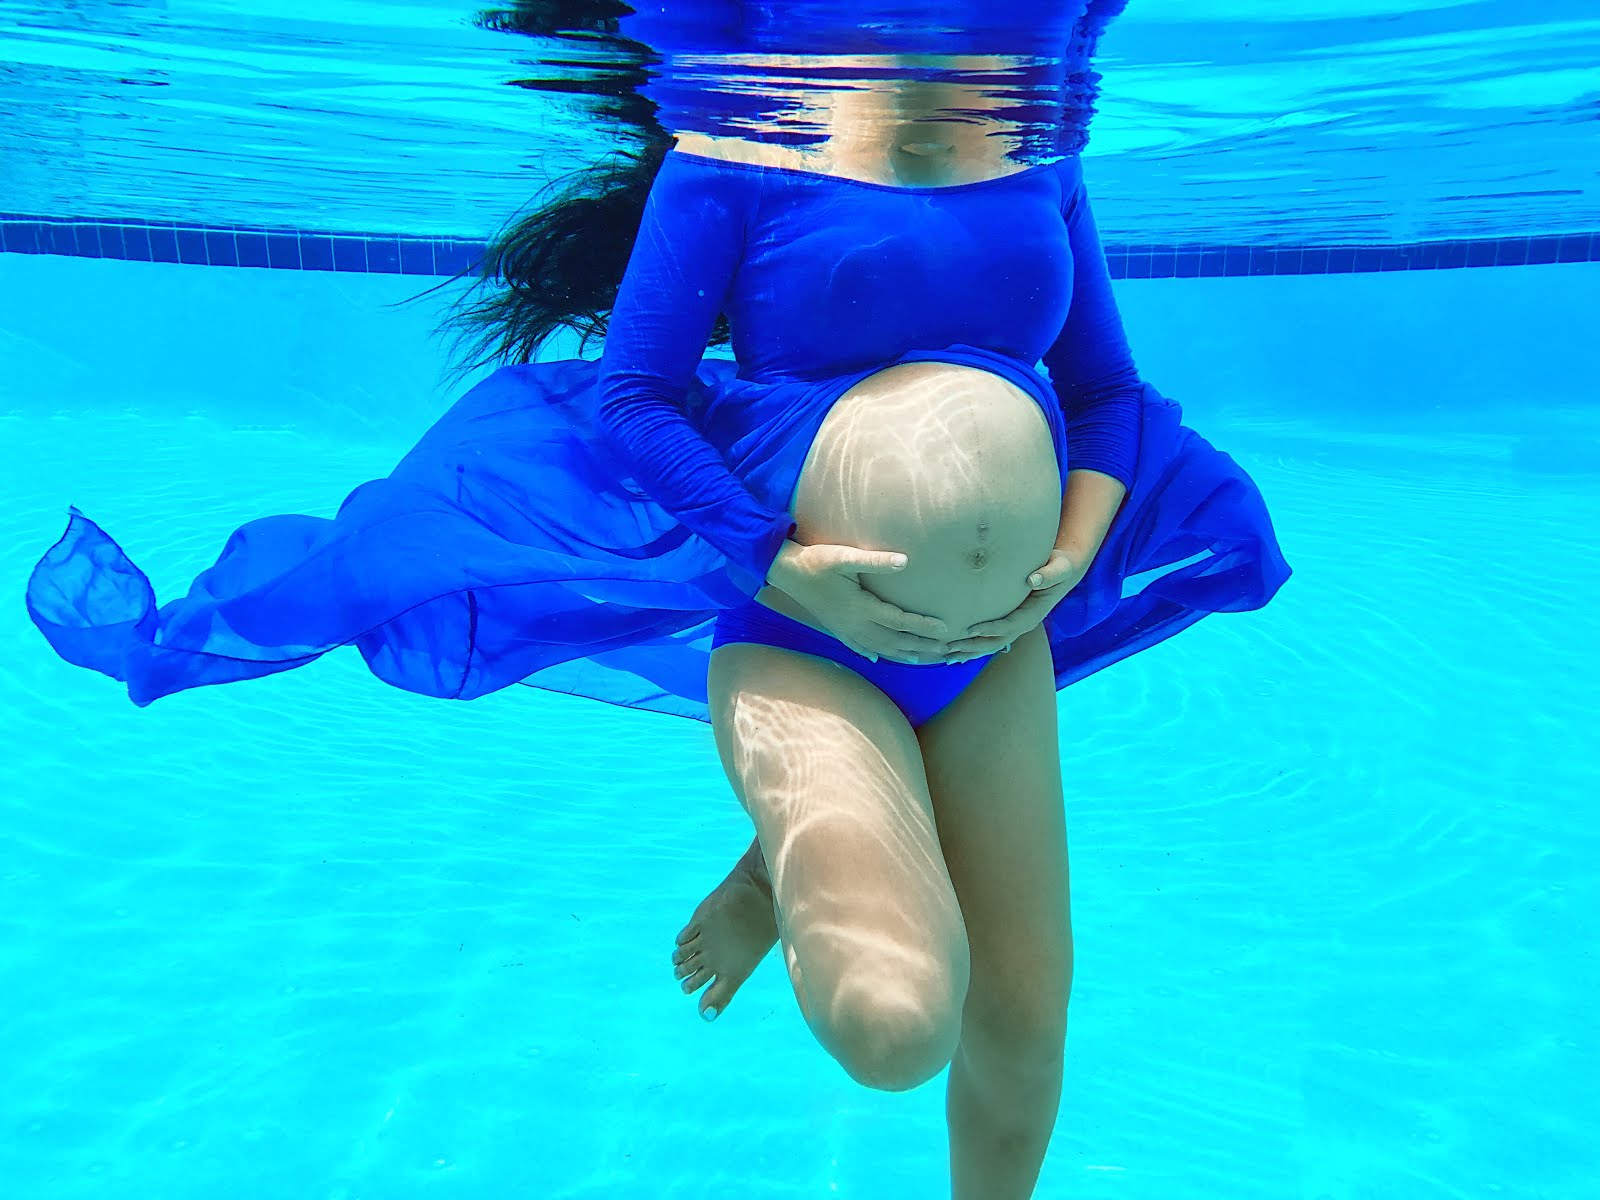 Underwater-Maternity-Photoshoot-Tumblr-Inspired-Vivi-Brizuela